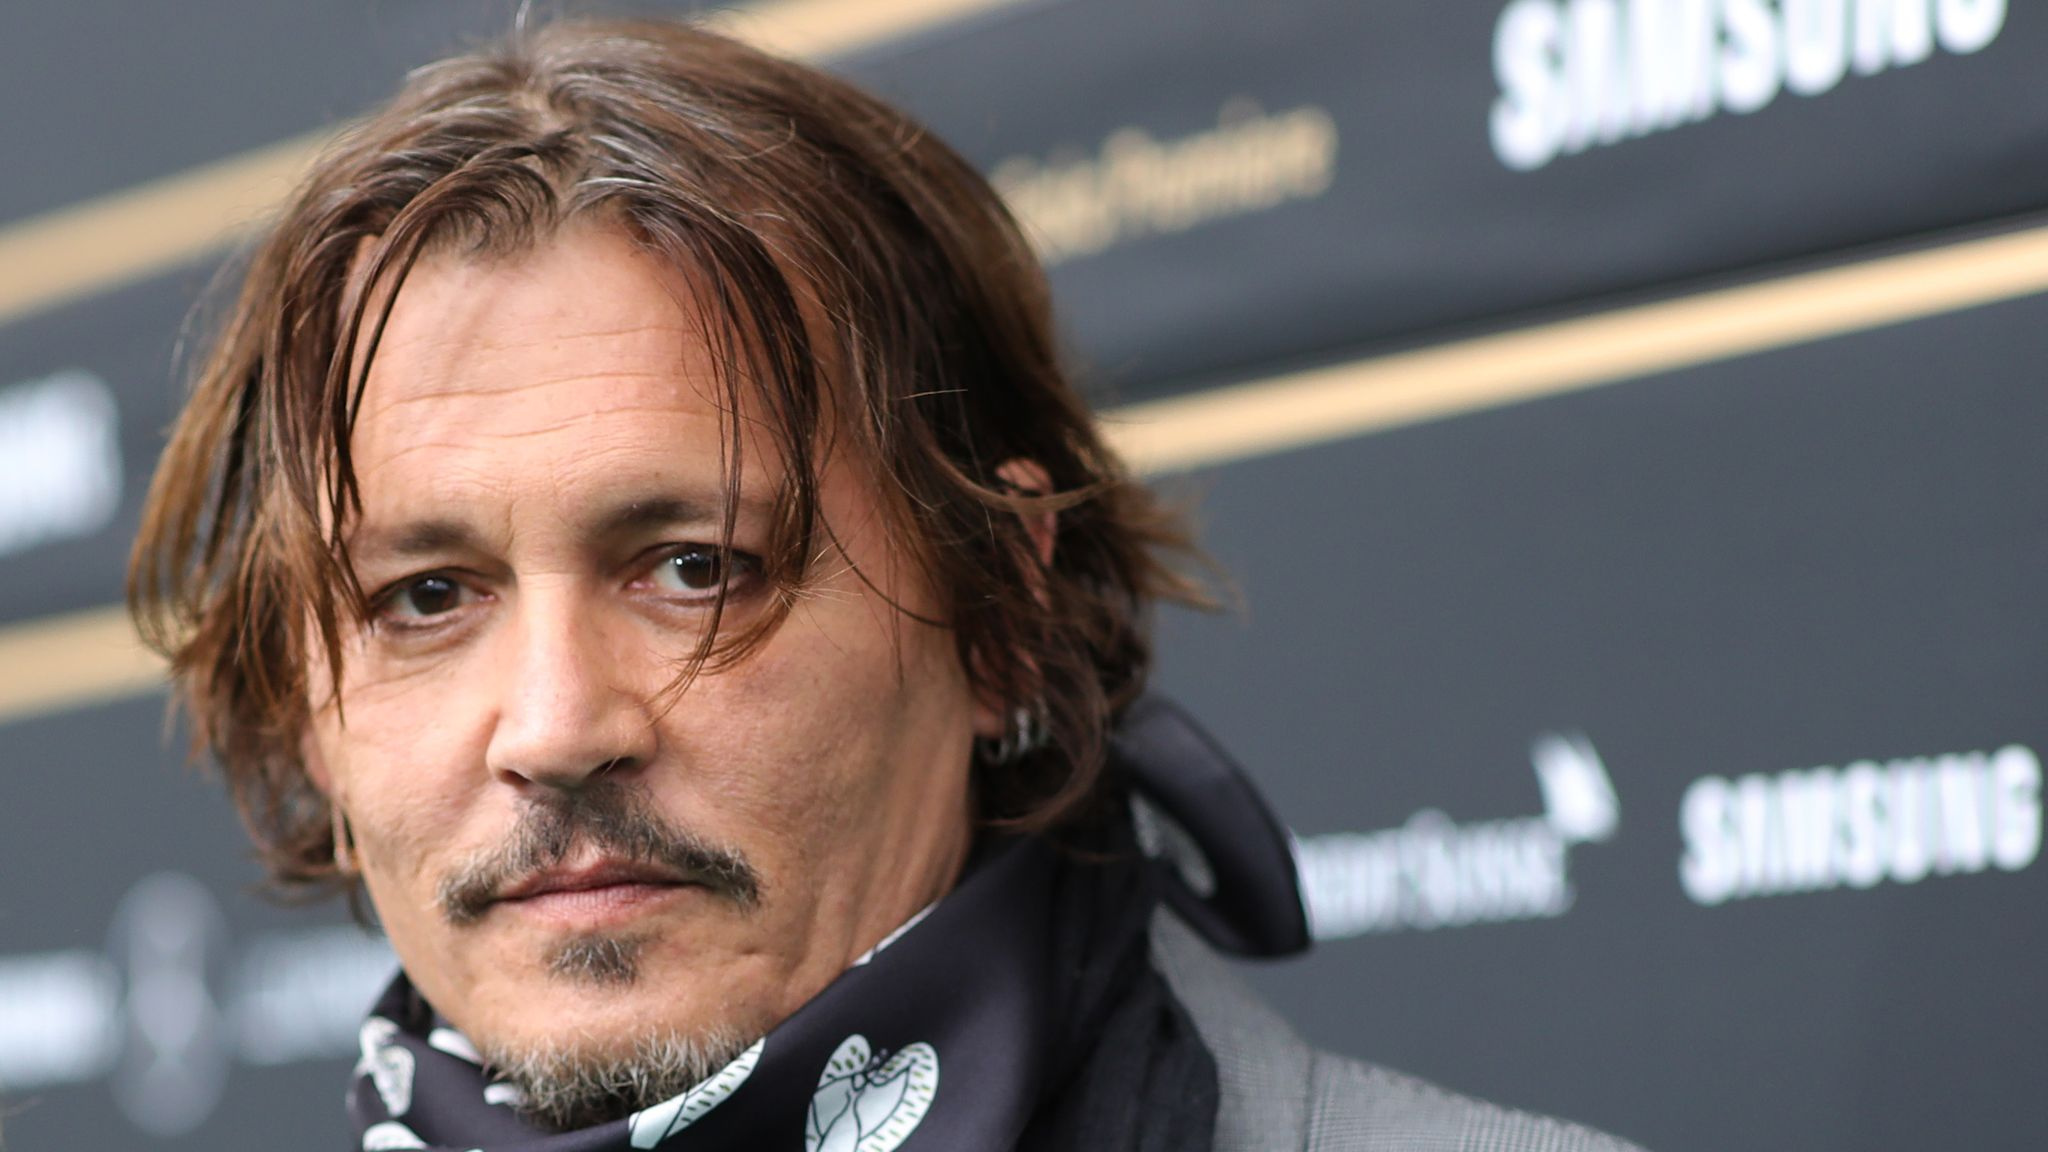 """ZURICH, SWITZERLAND - OCTOBER 02: Johnny Depp attends the """"Crock of Gold: A few Rounds with Shane McGowan"""" premiere during the 16th Zurich Film Festival at Kino Corso on October 02, 2020 in Zurich, Switzerland. (Photo by Andreas Rentz/Getty Images for ZFF)"""